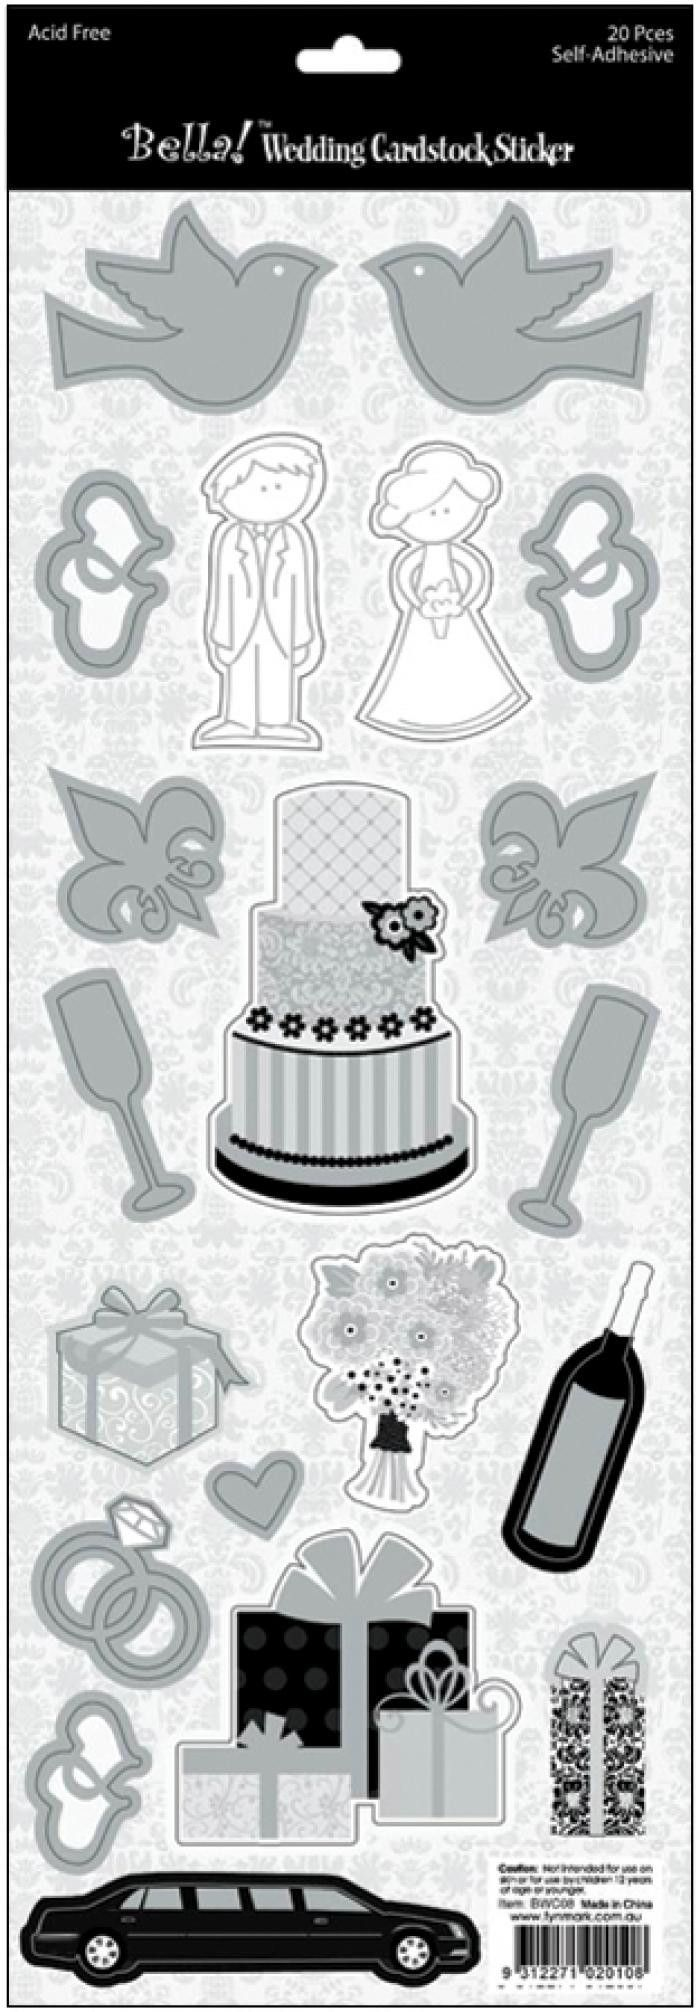 Wedding Foiled Cardstock Stickers Icons/Black & White w/Silver